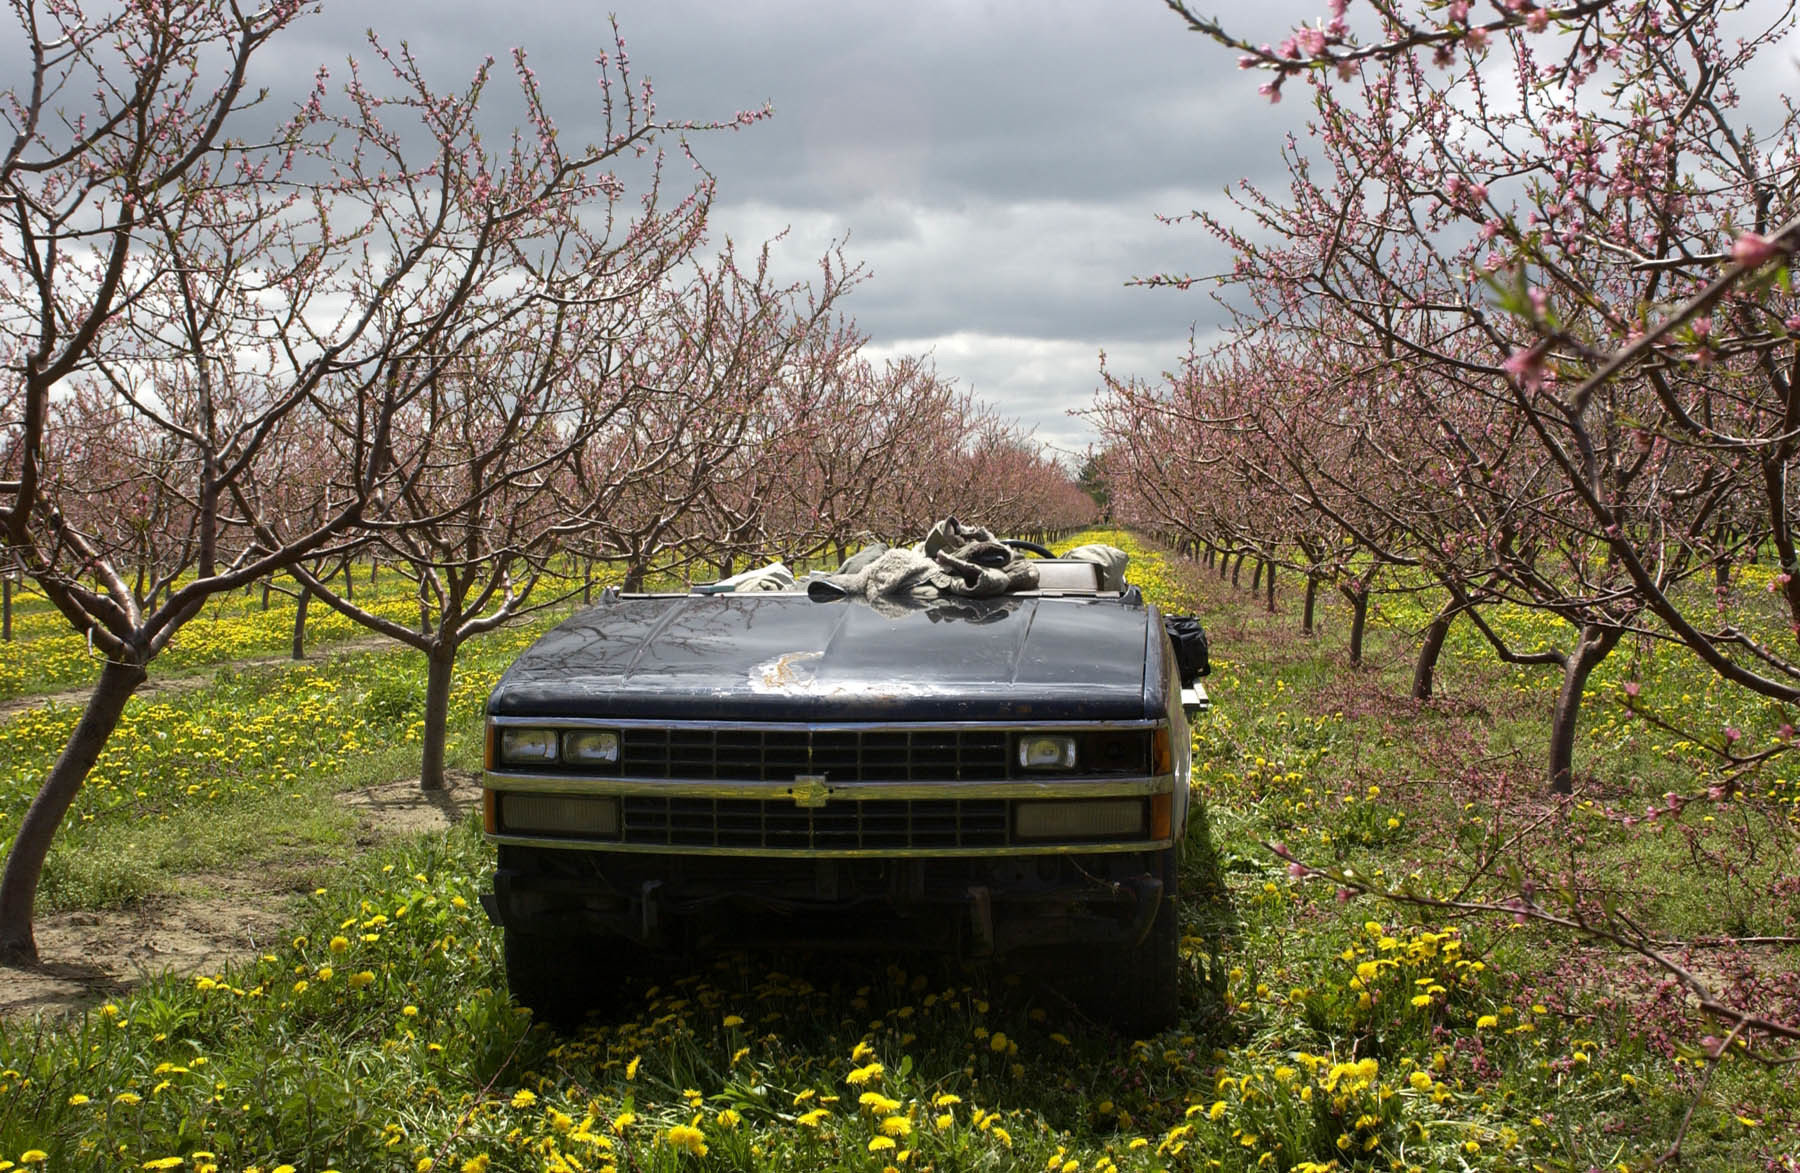 A roofless truck sits as the migrant workers tend to the orchards.